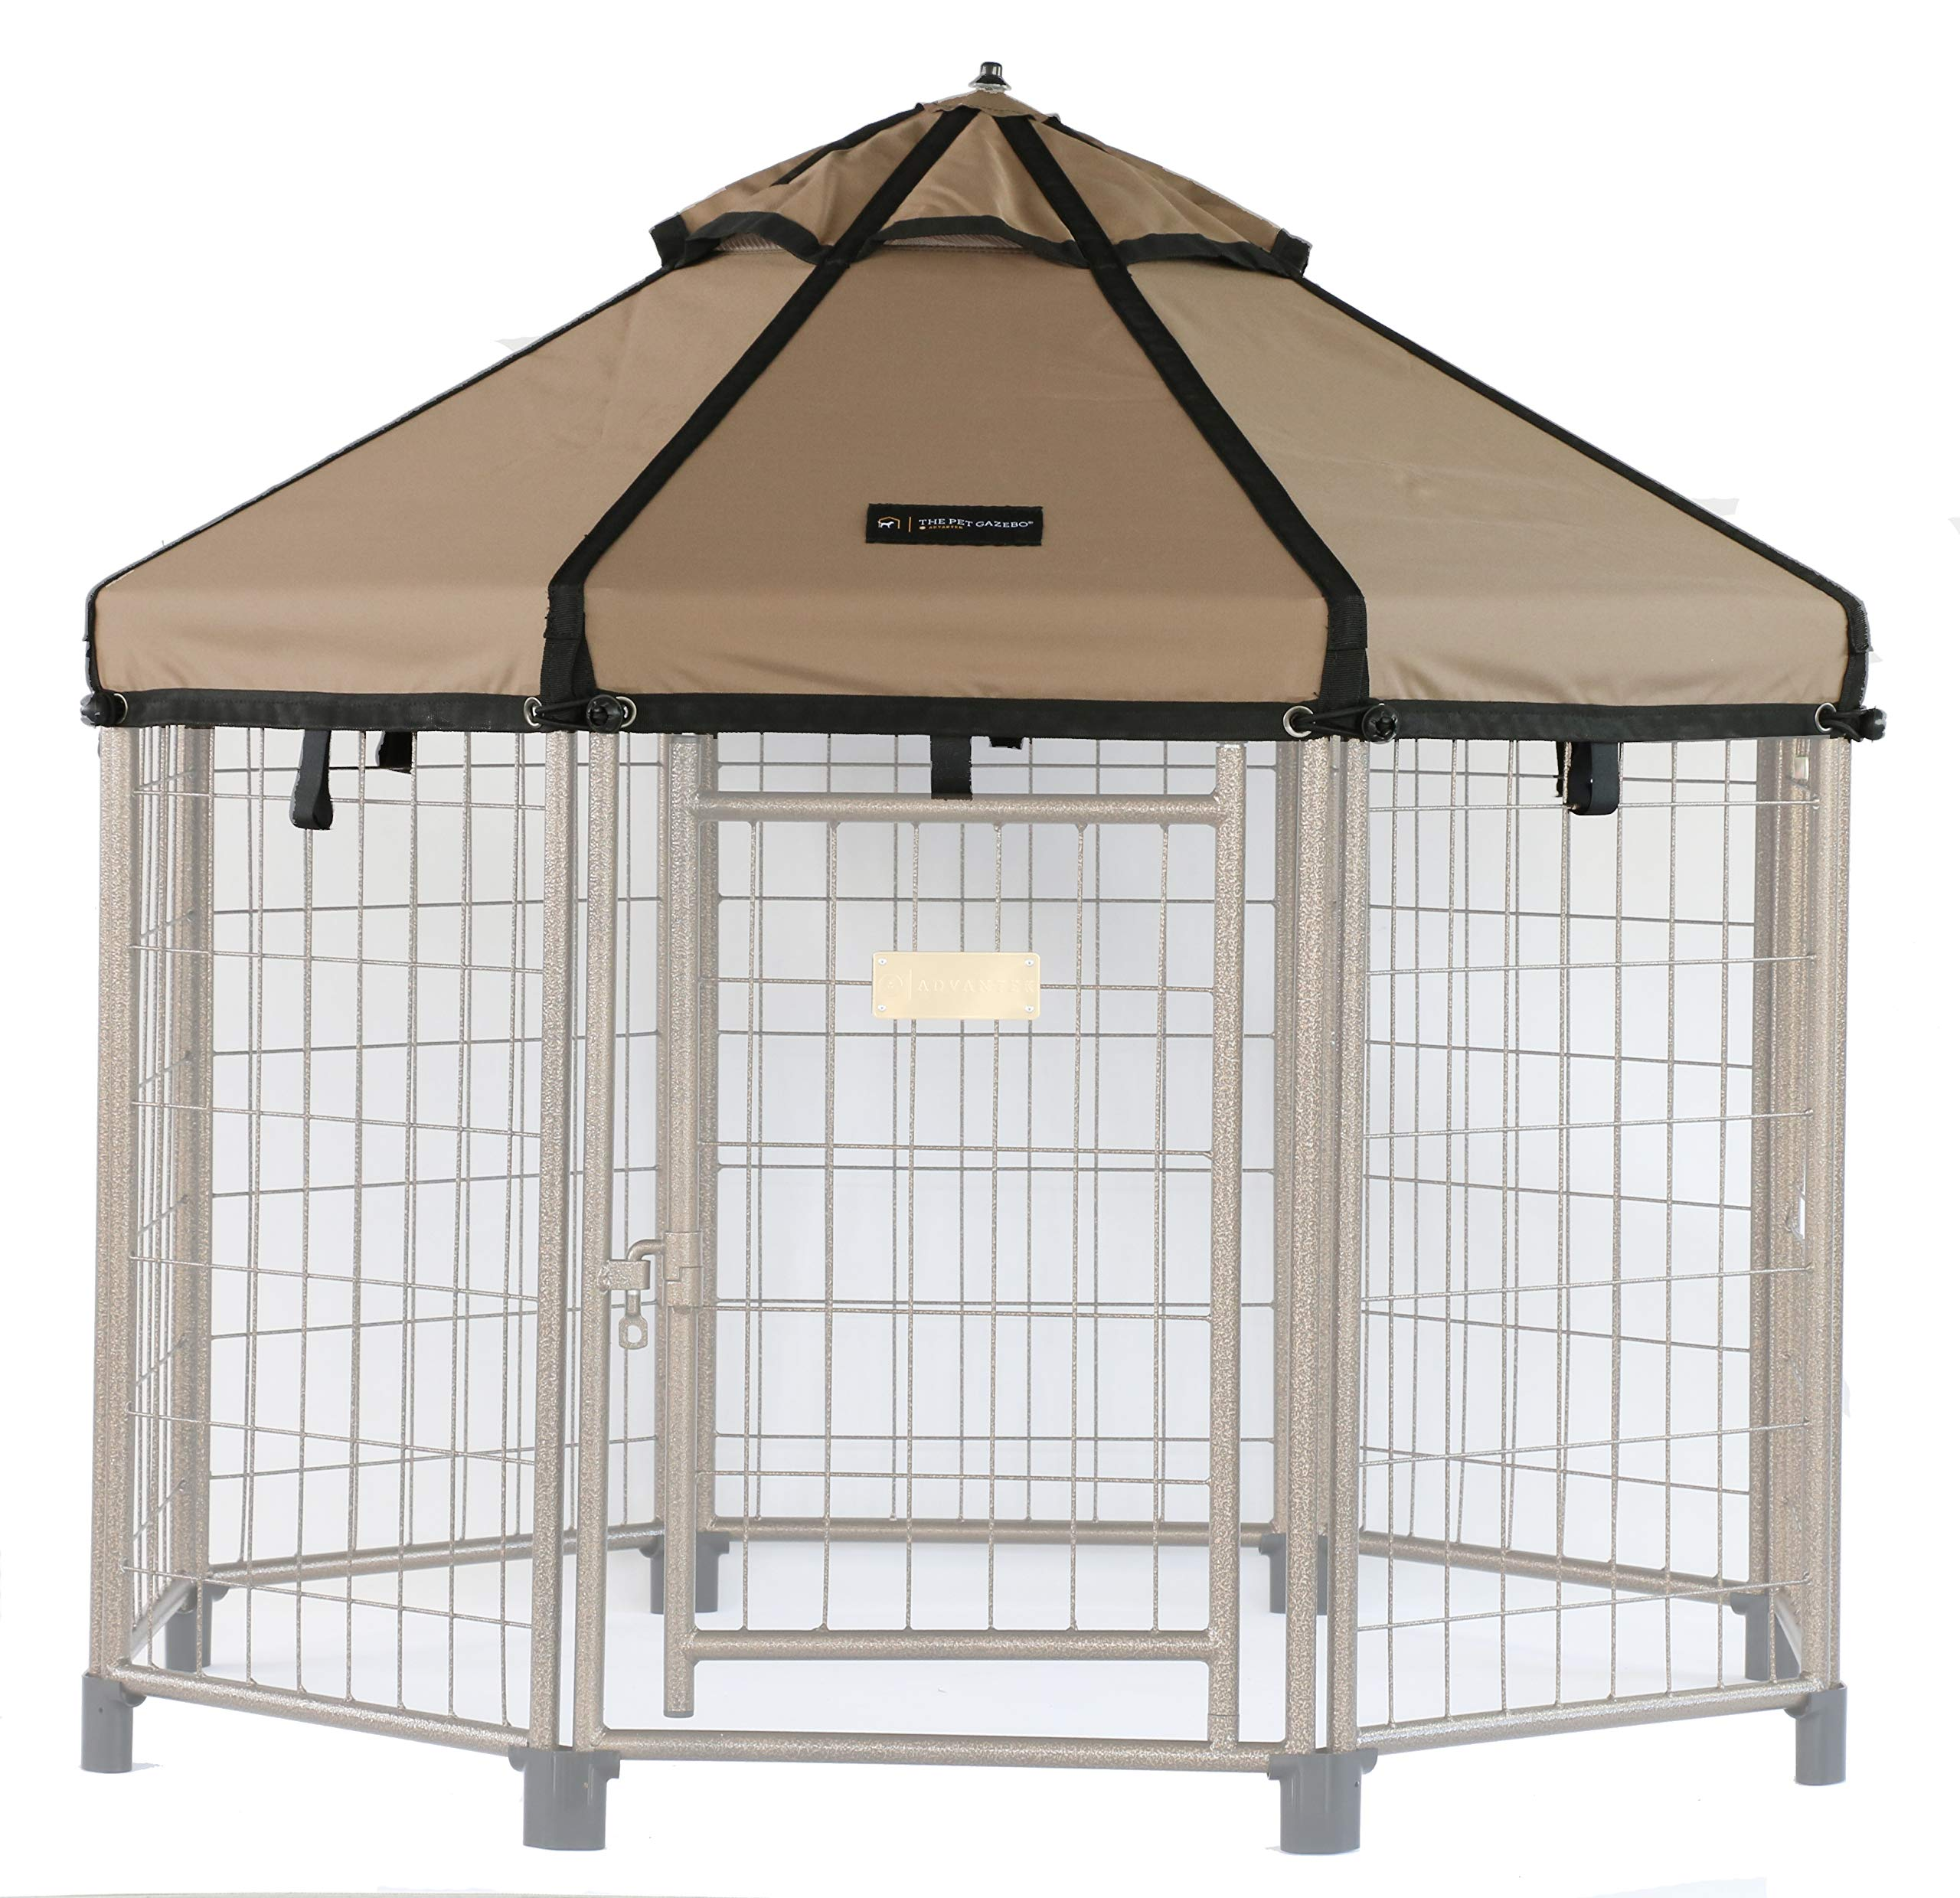 Advantek Pet Gazebo Replacement Cover for 4ft Gazebos, Earth Taupe